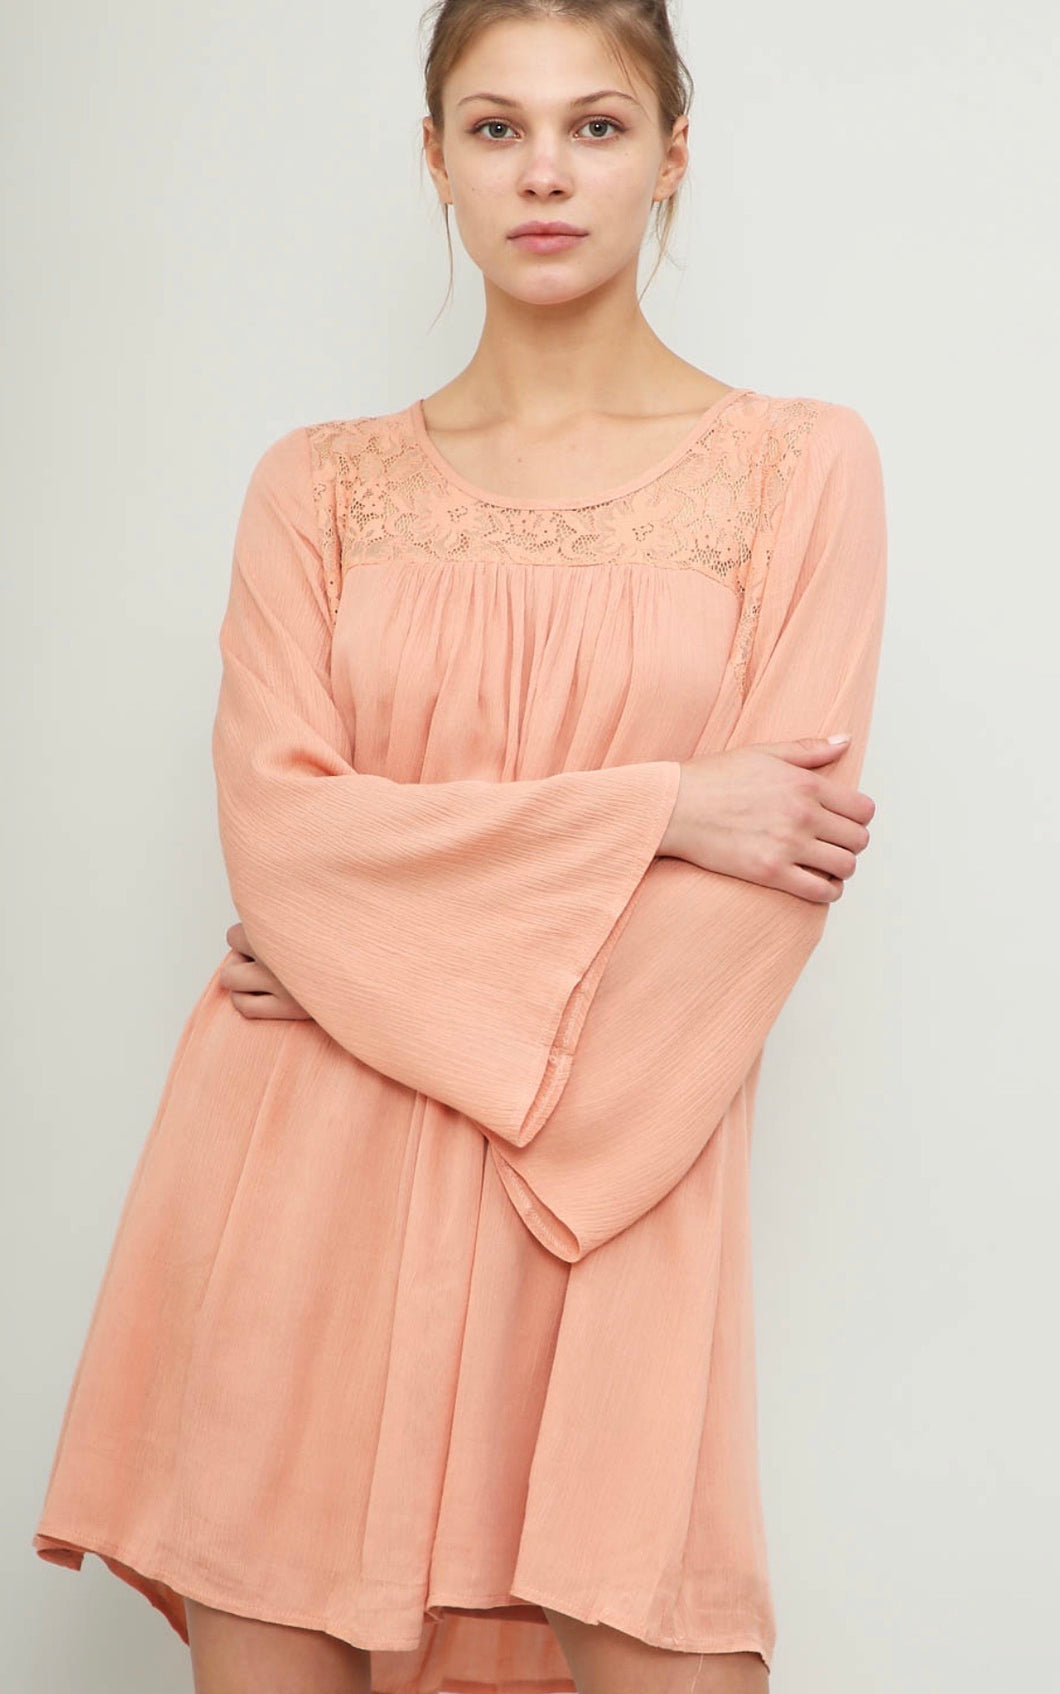 1267 - Lace Peach Boho Dress